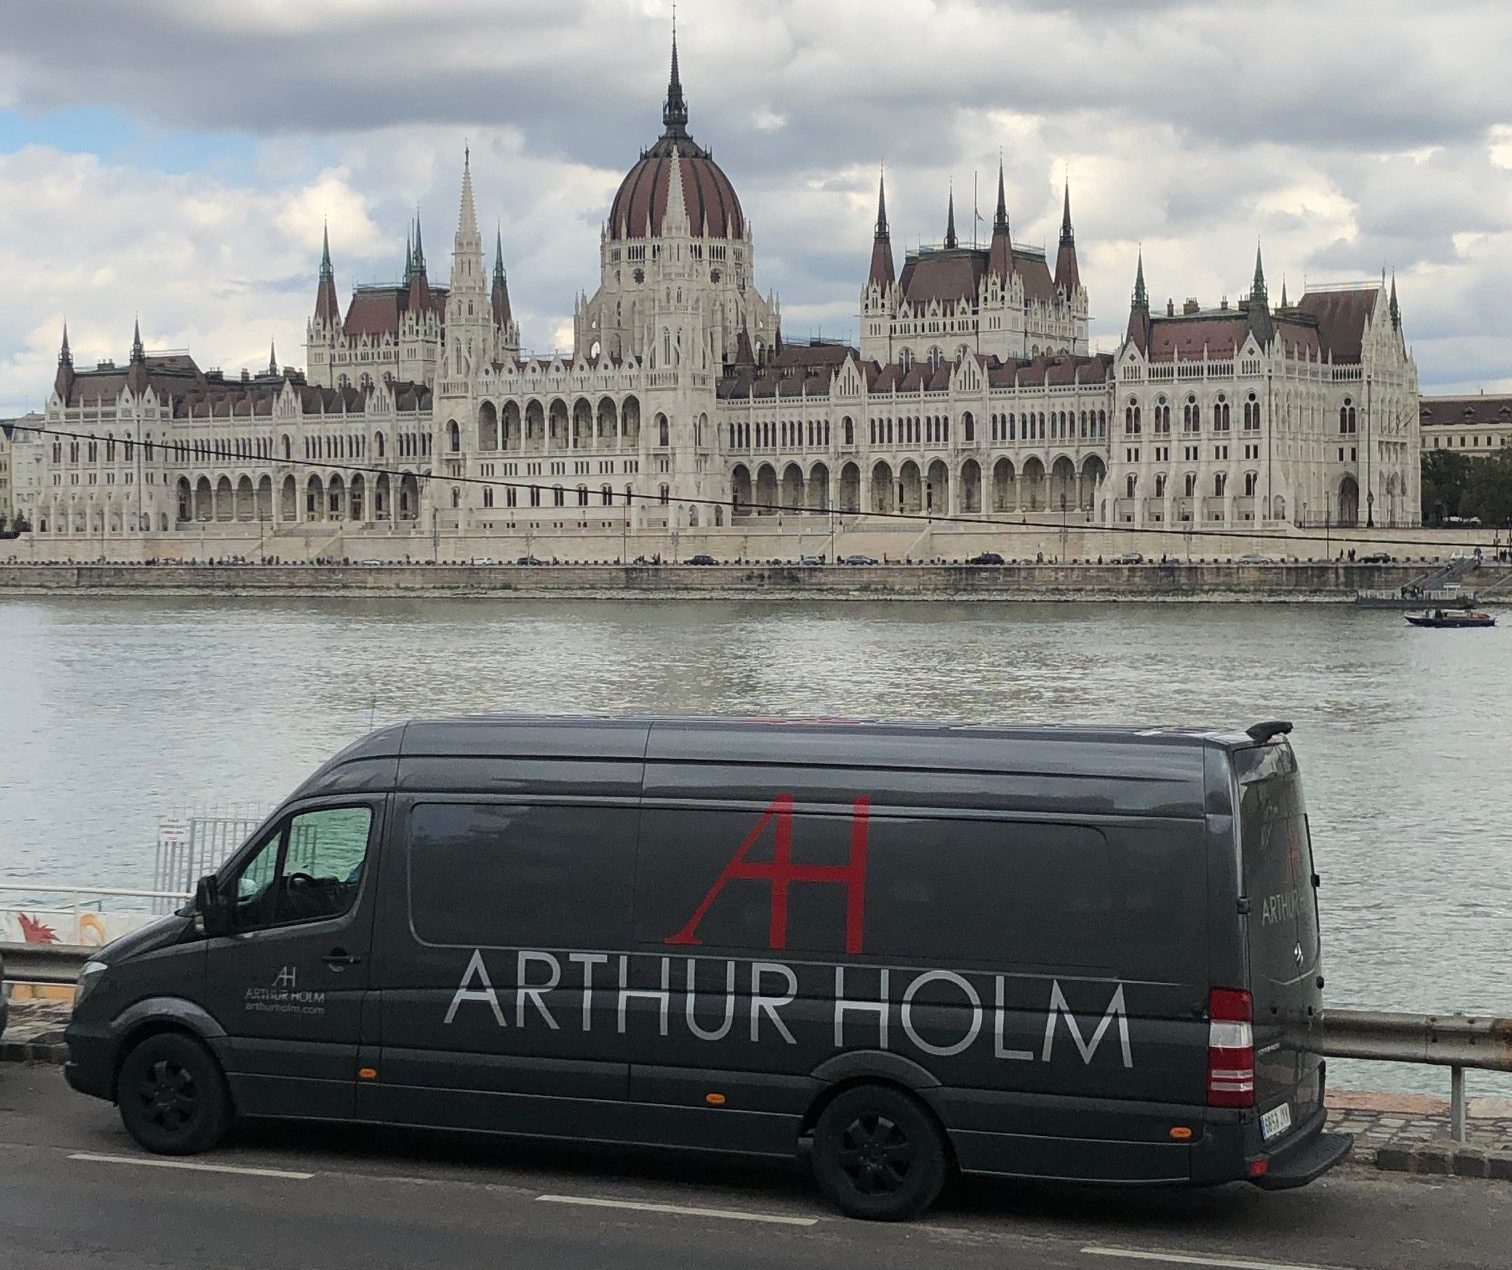 Arthur Holm on the road